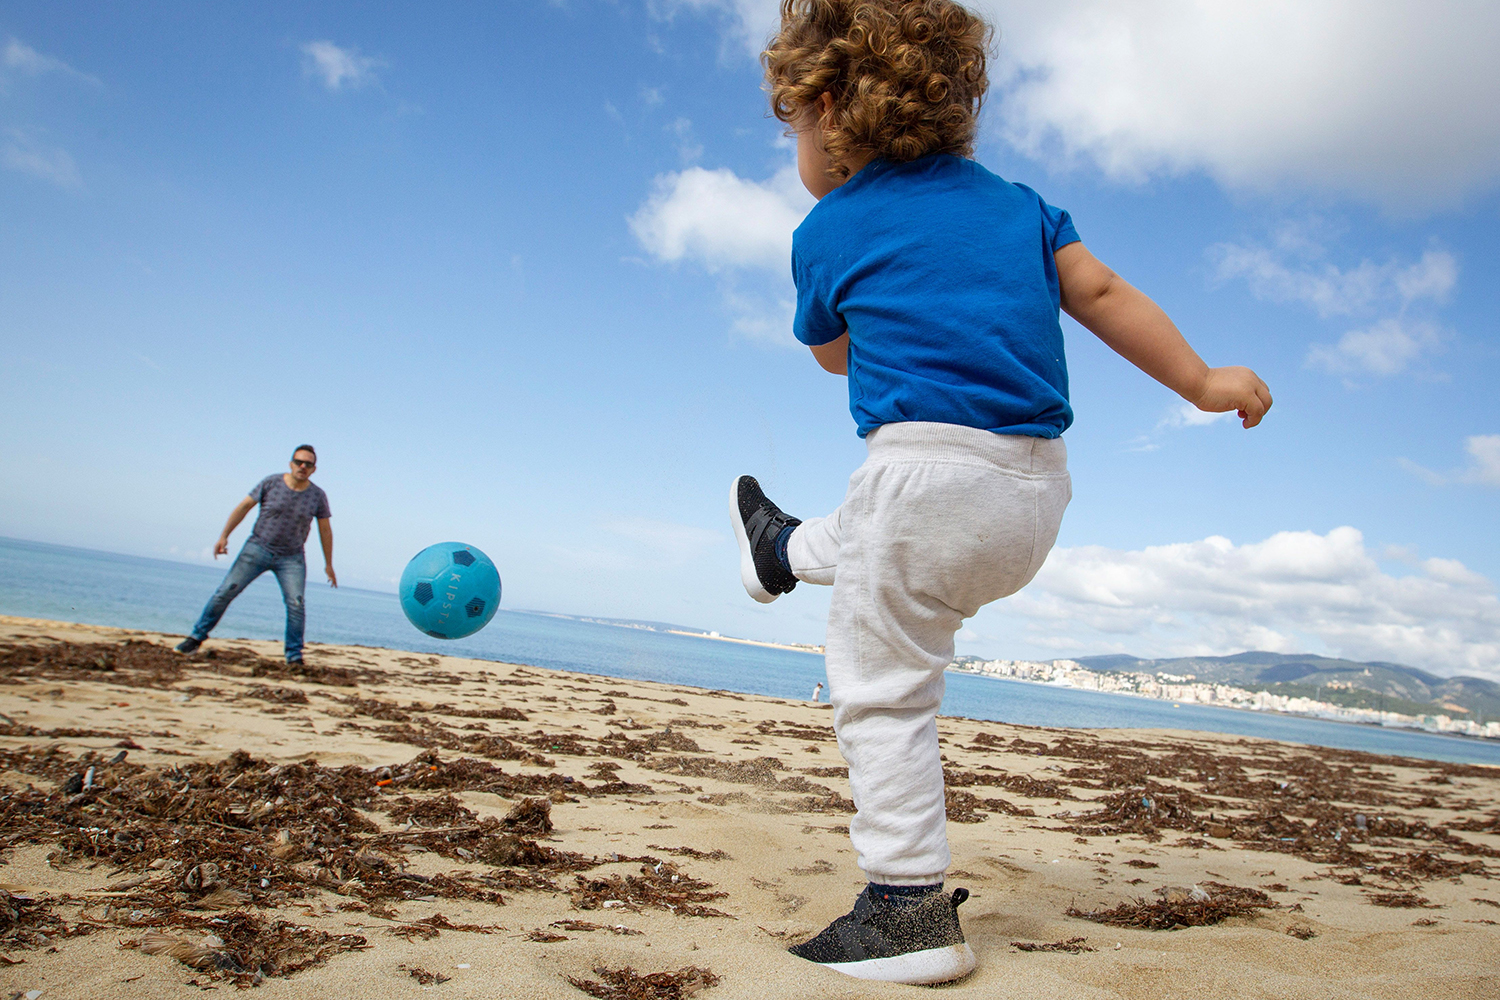 A child plays ball with his father at Can Pere Antoni Beach in Palma de Mallorca, Spain, on April 26. After six weeks stuck at home, Spain's children were being allowed out to run, play, or go for a walk as the government eased one of the world's toughest coronavirus lockdowns. JAIME REINA/AFP via Getty Images